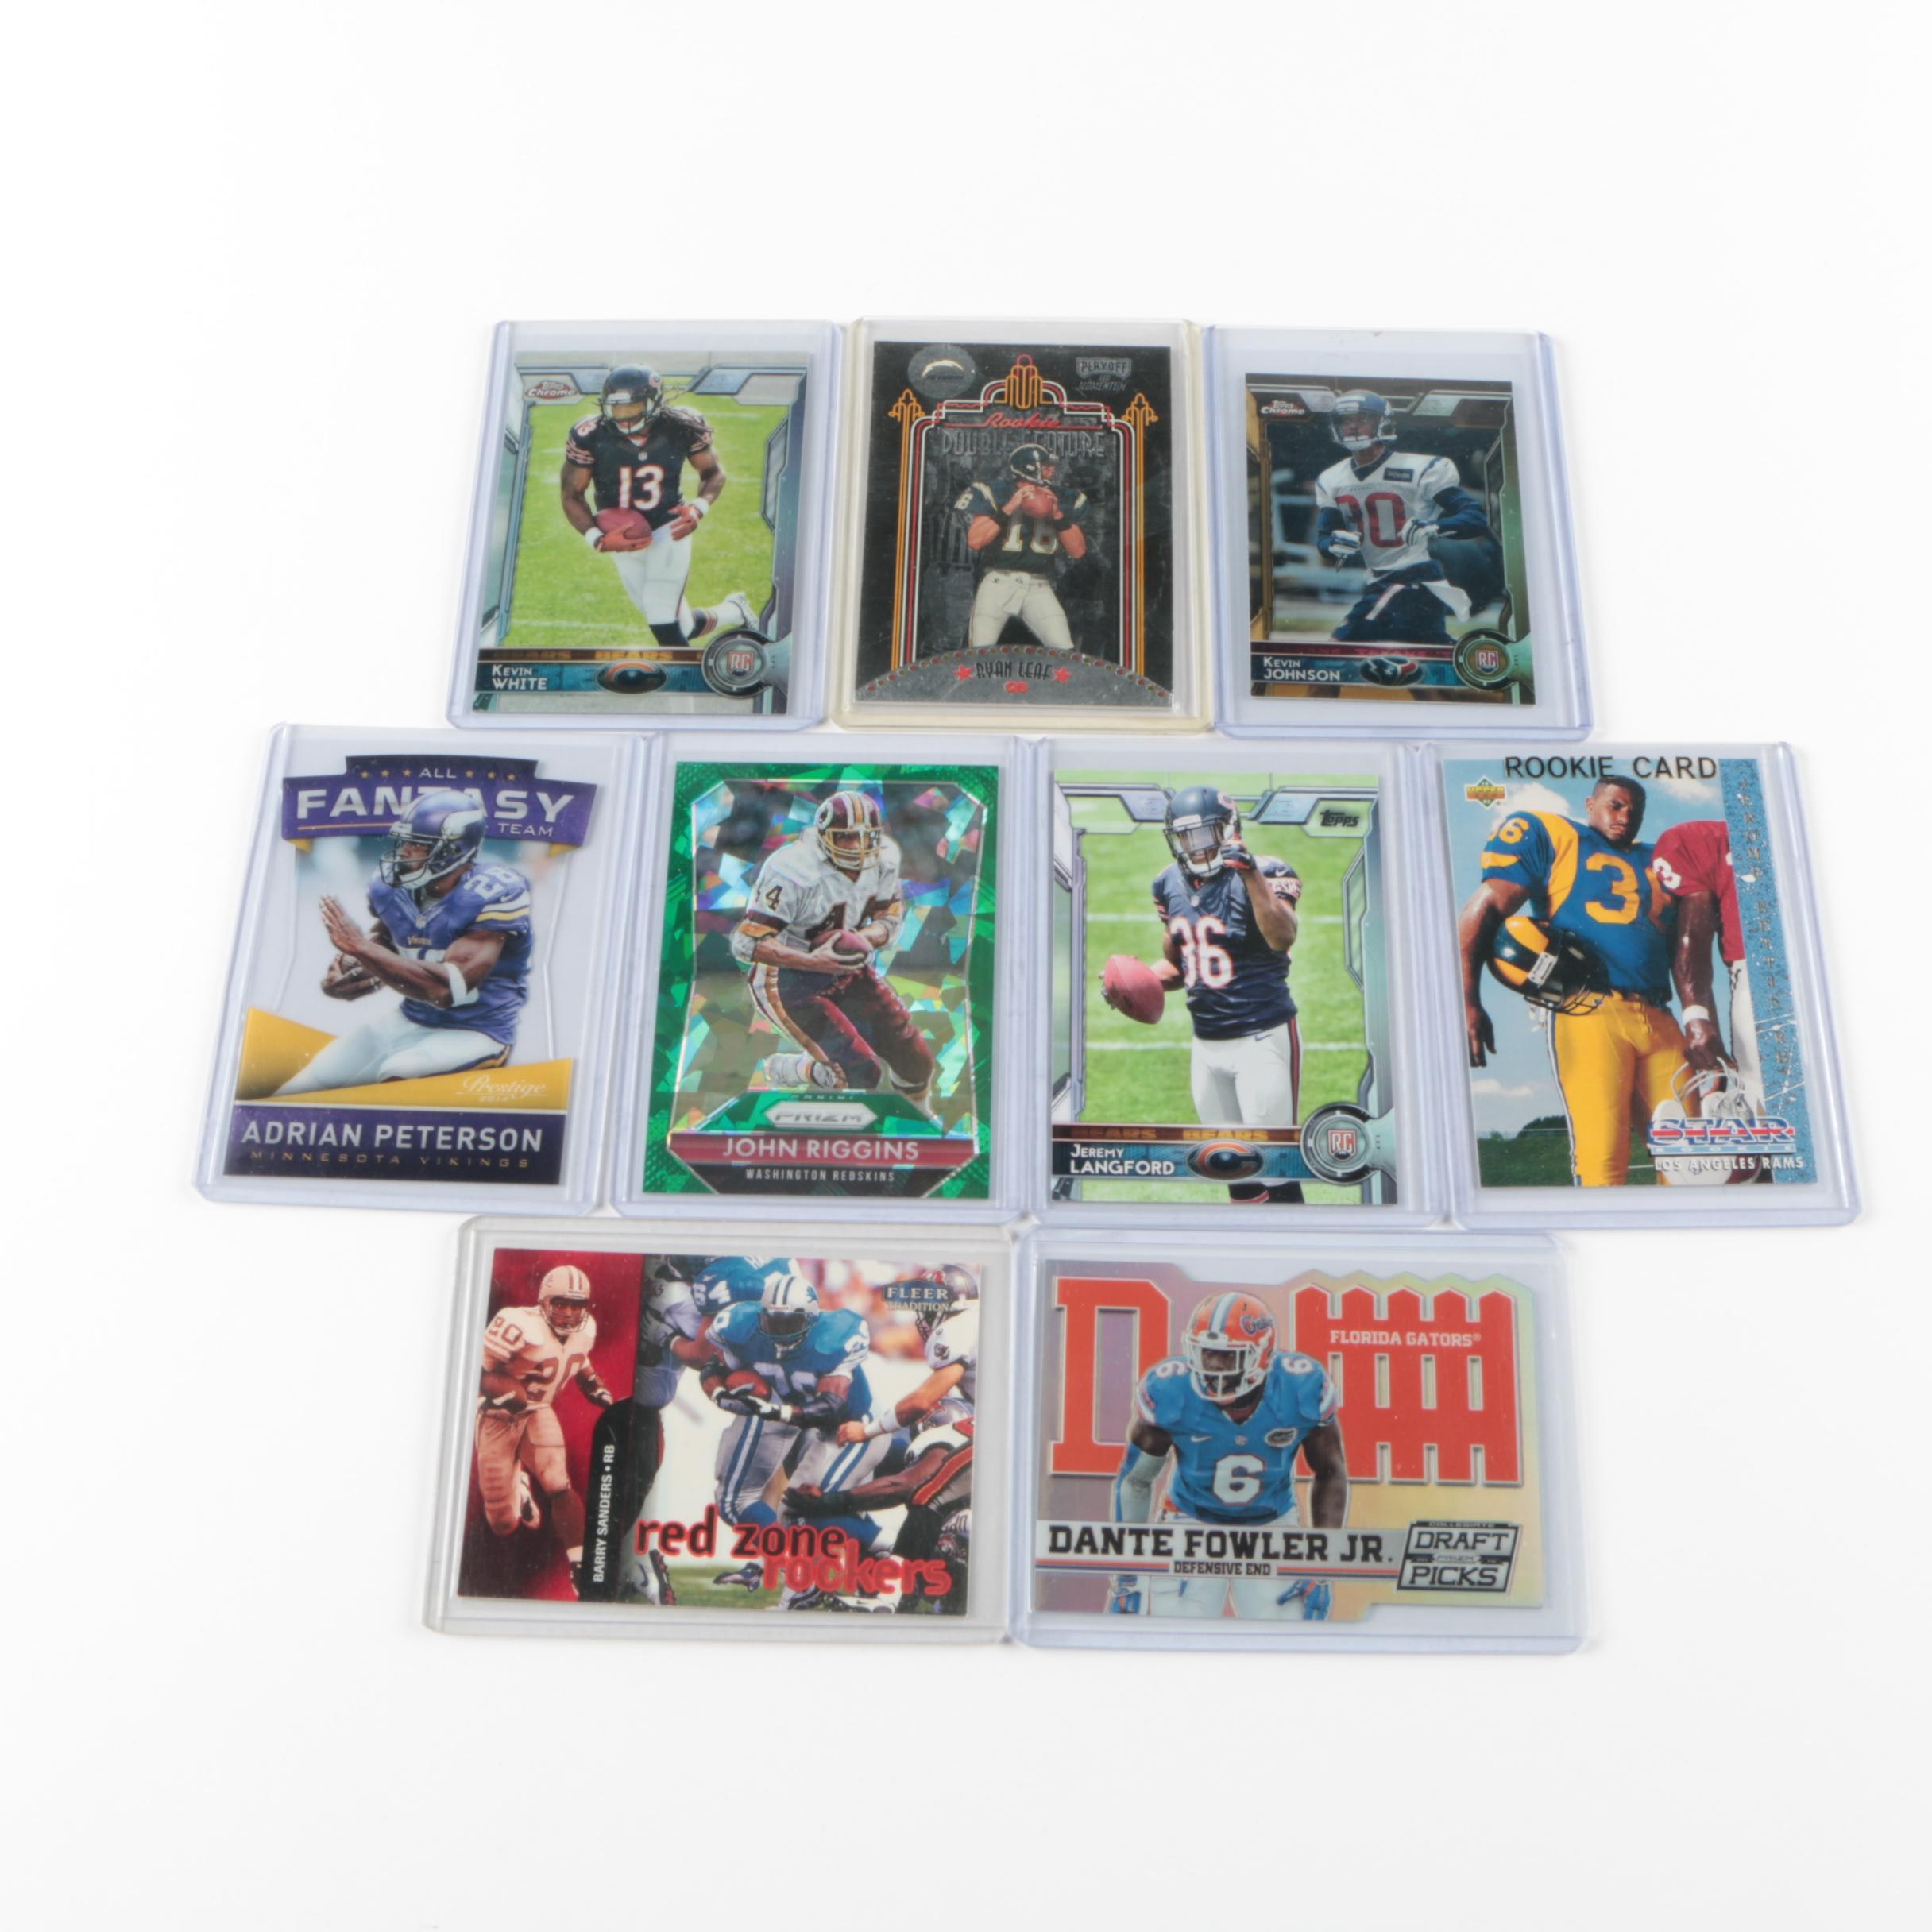 Assorted Football Trading Cards including Jerome Bettis Rookie Card